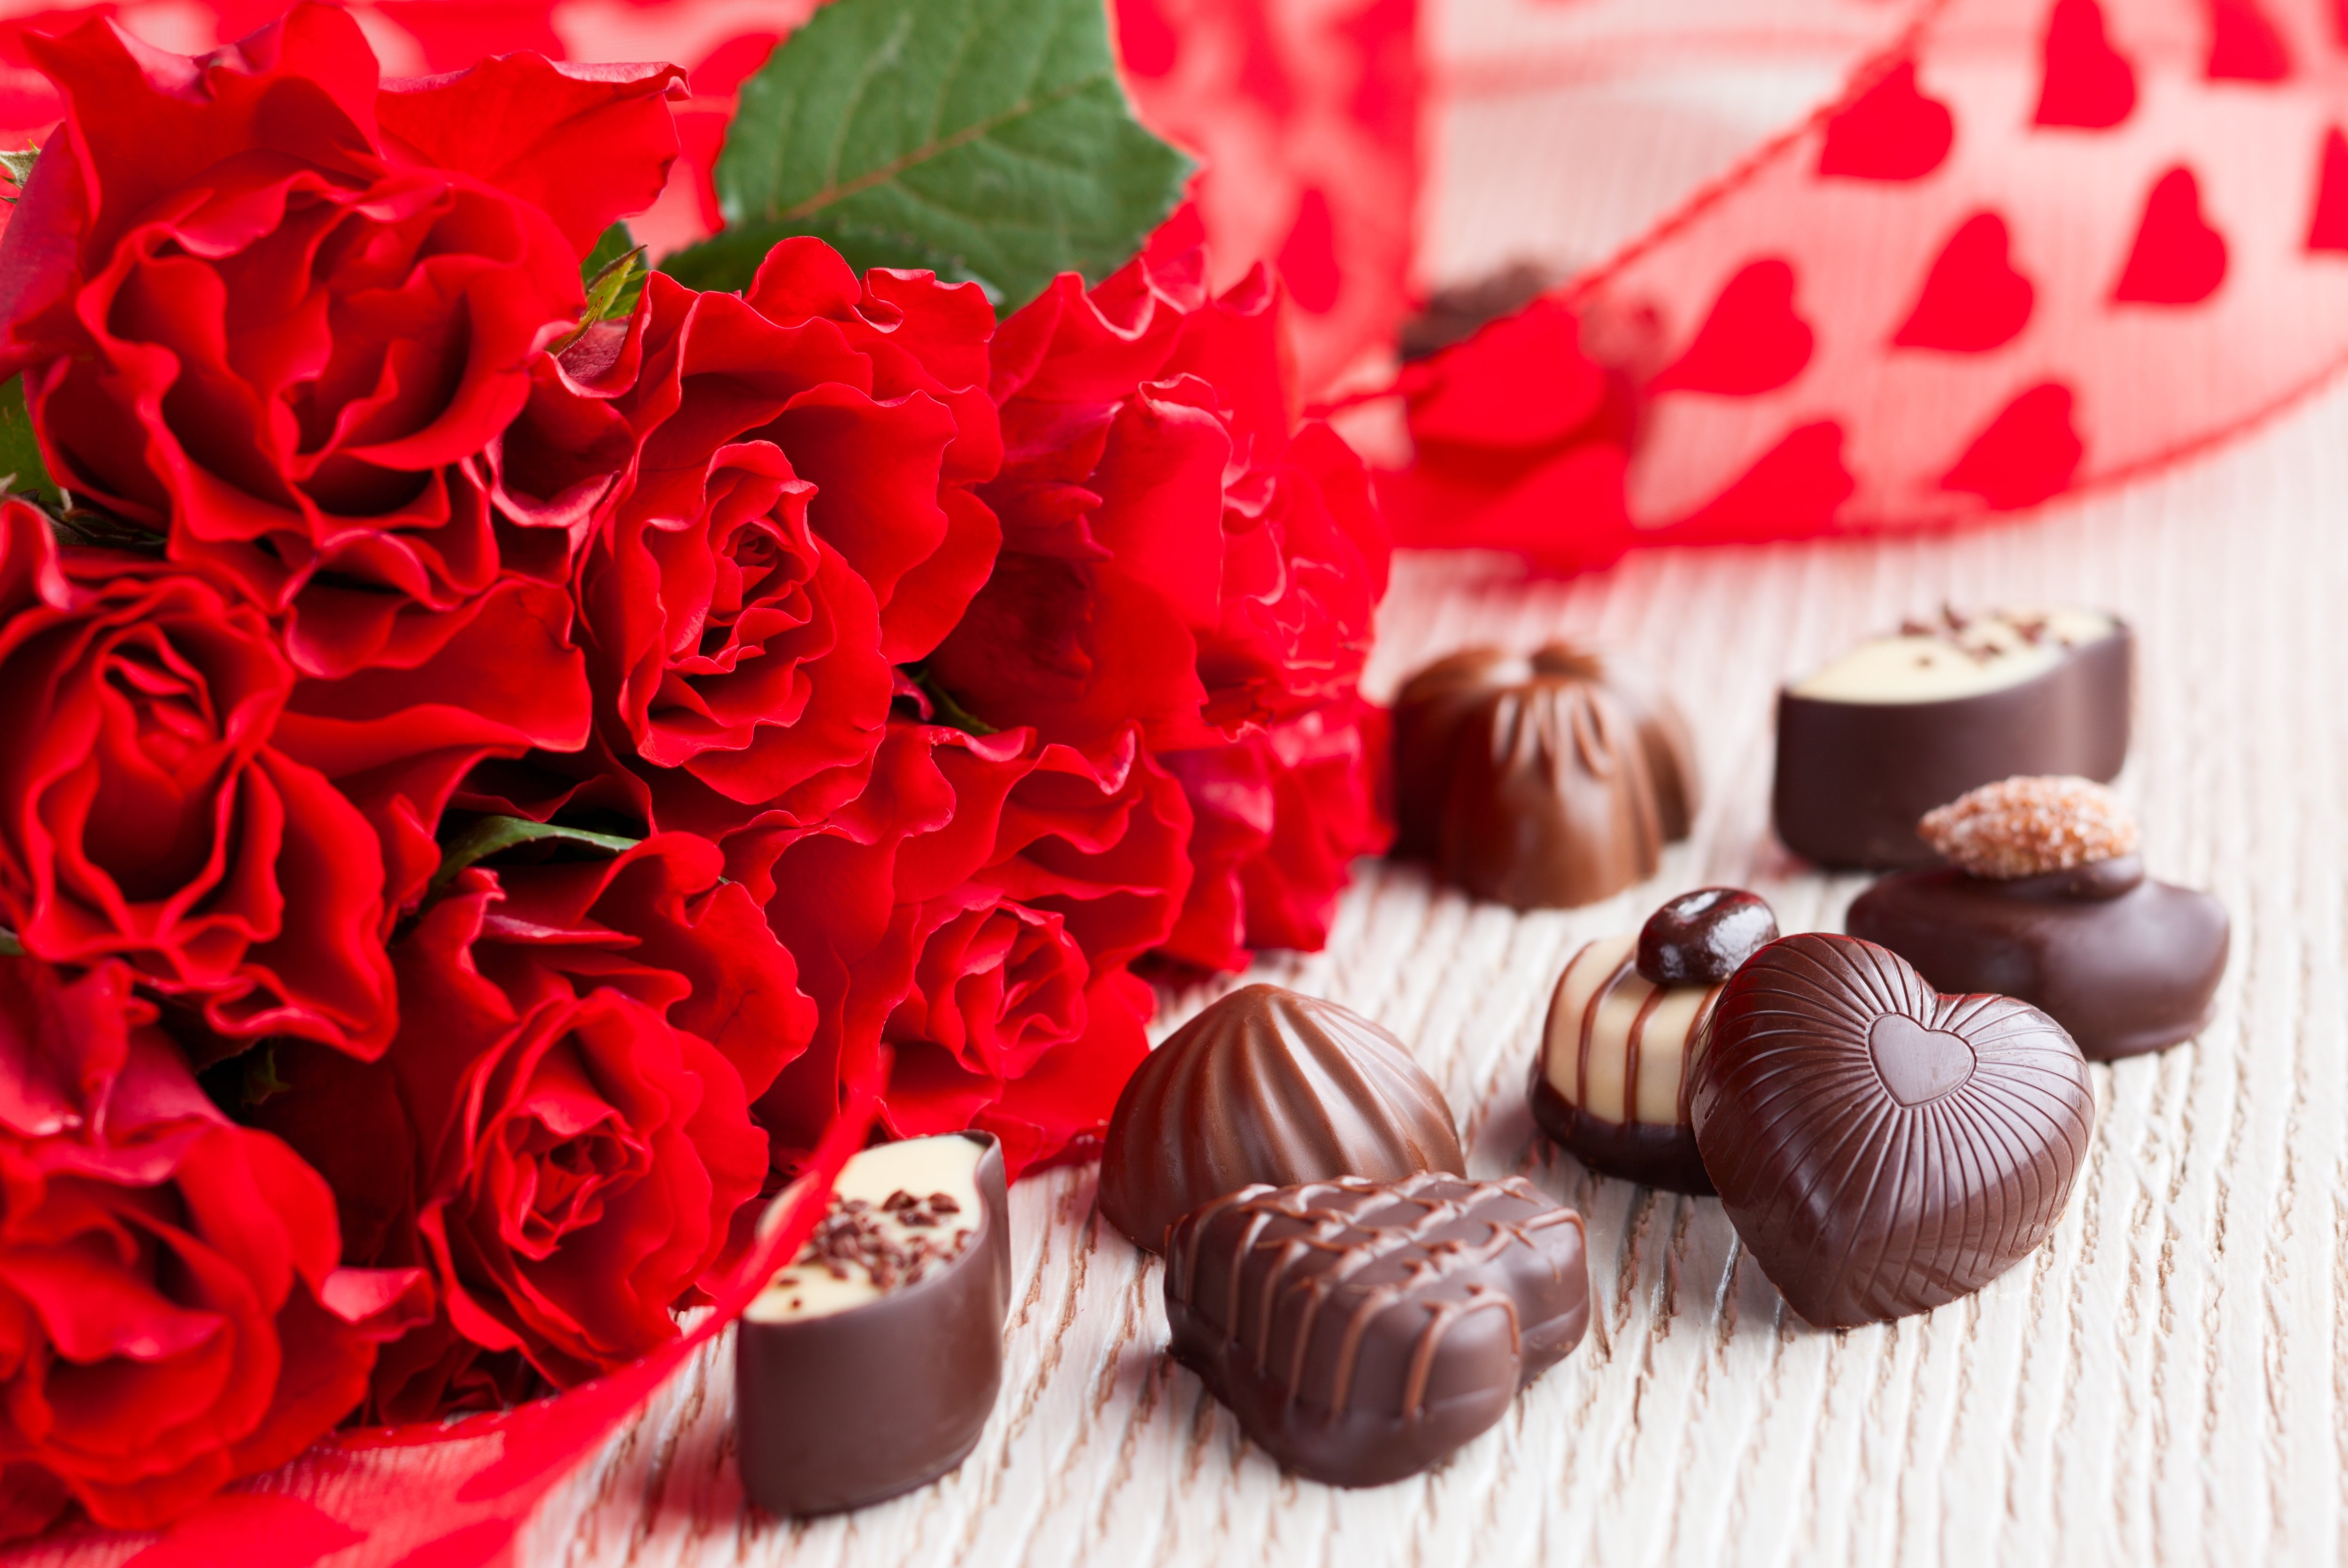 Rose flowers love life Chocolate presents wallpaper 5000x3340